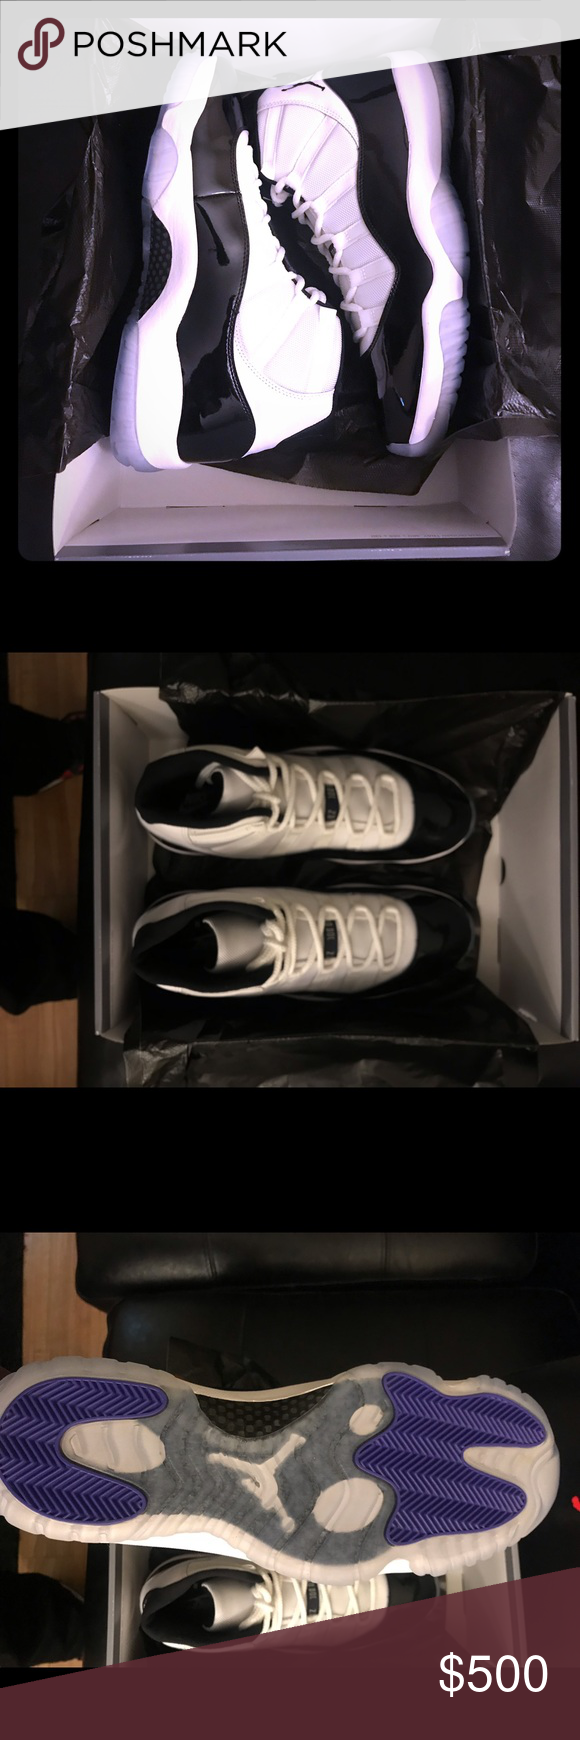 825942216af4e Jordan Concord 11 s Brand New Size 10   10.5 available Friday. Getting  shipped now from Footlocker and Champs. Comes with original box and  receipts.